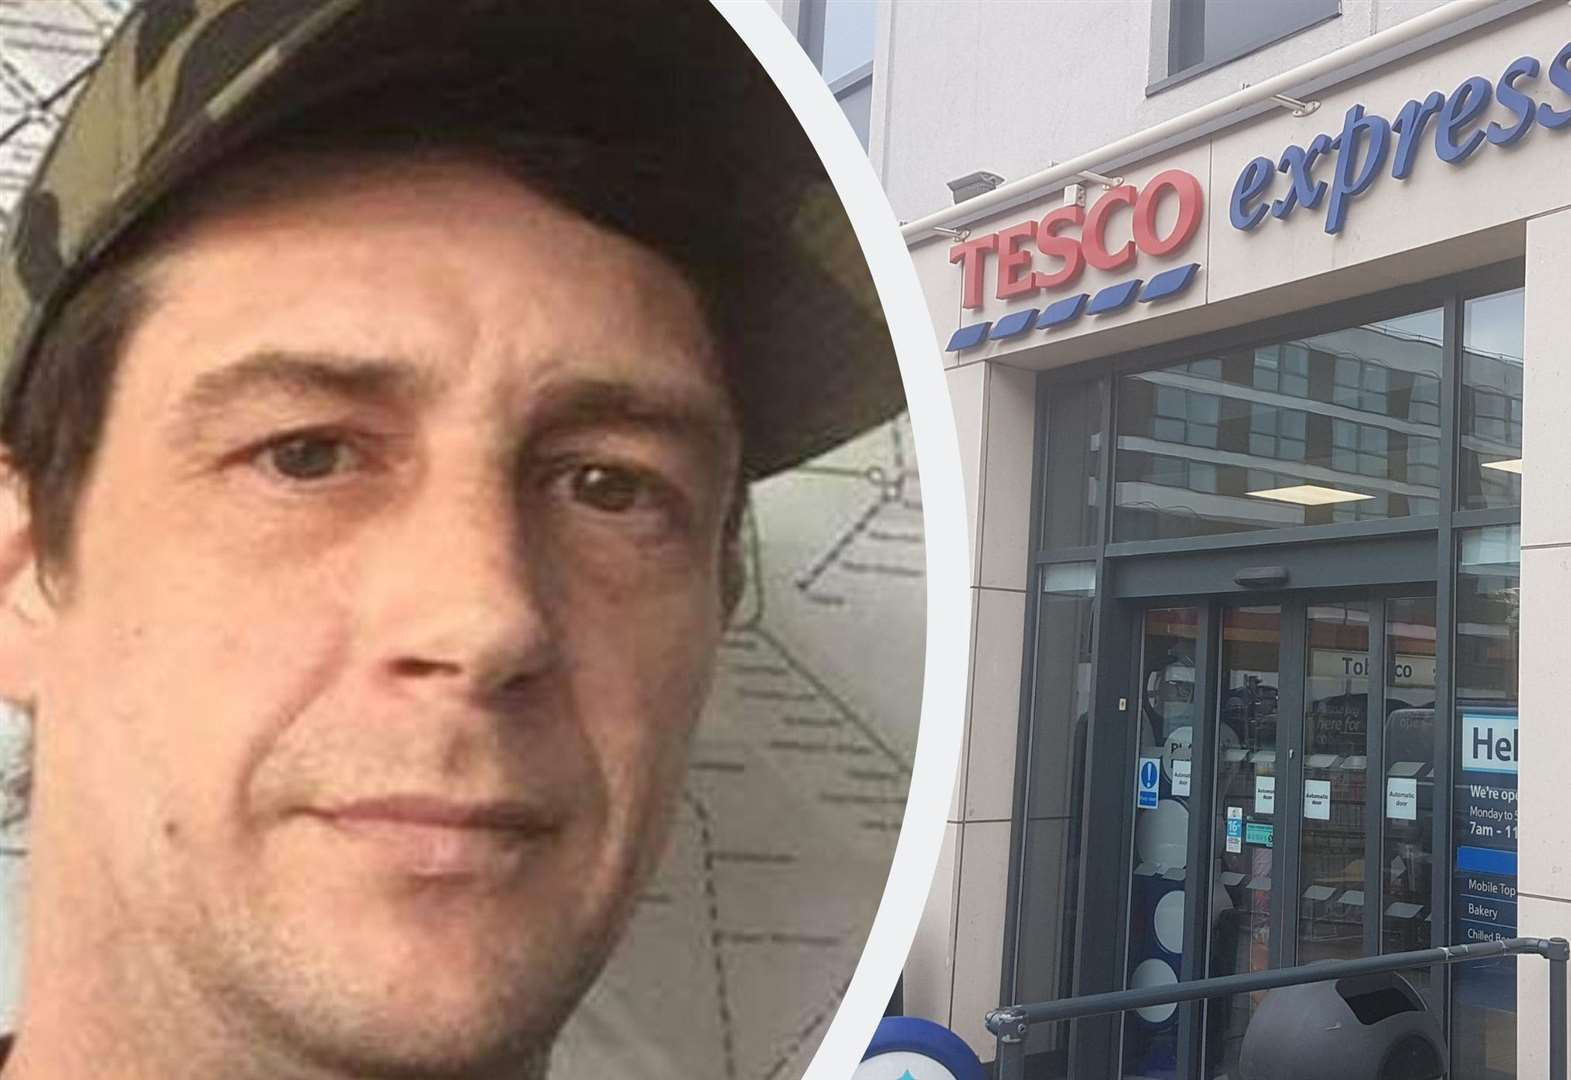 Axeman bites Tesco security guard